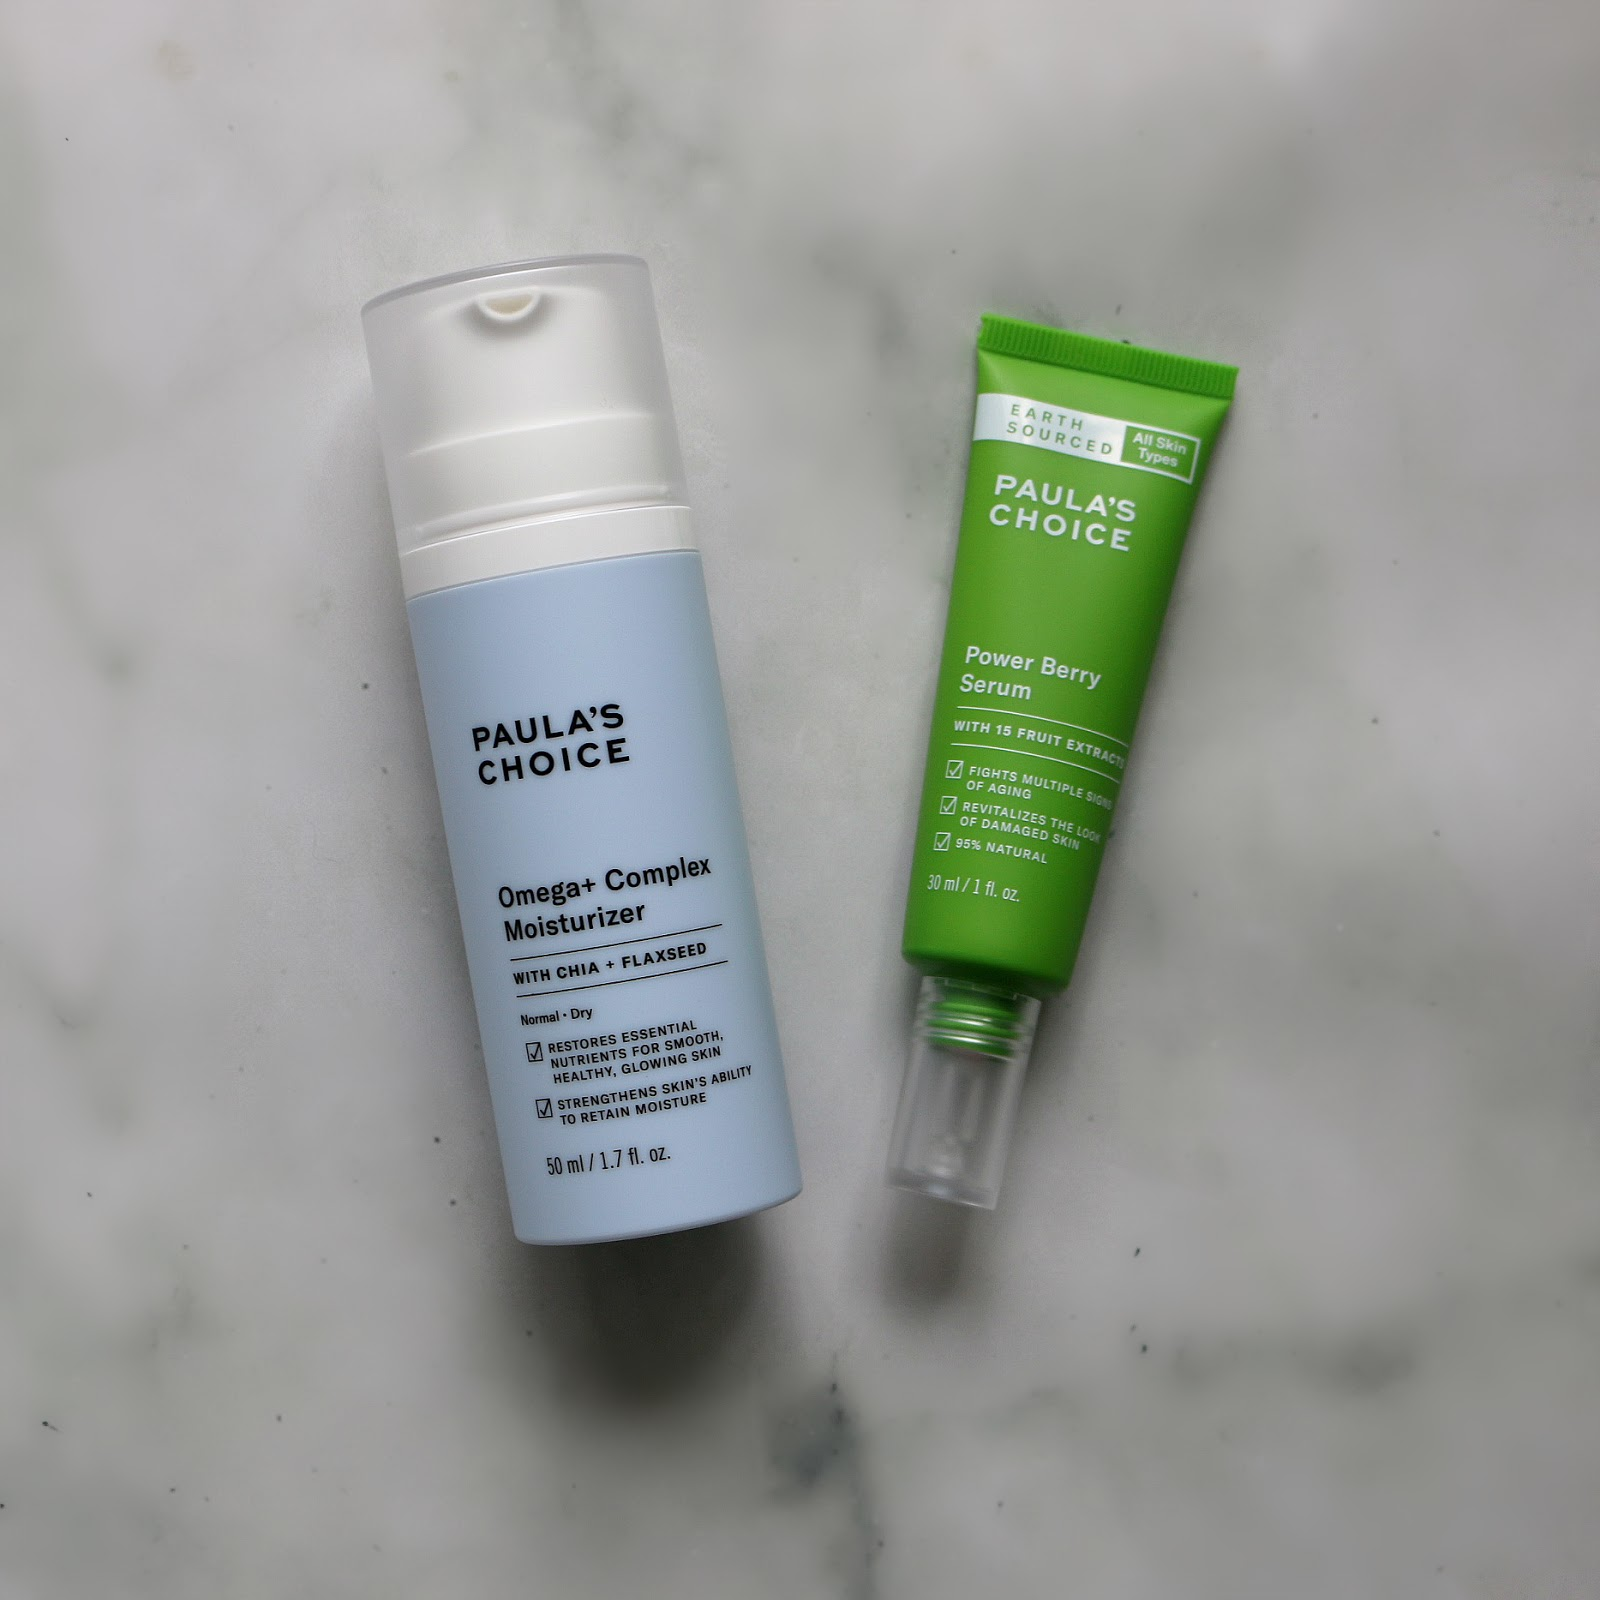 Paula's Choice Omega+ Complex Moisturizer & Earth Sourced Power Berry Serum